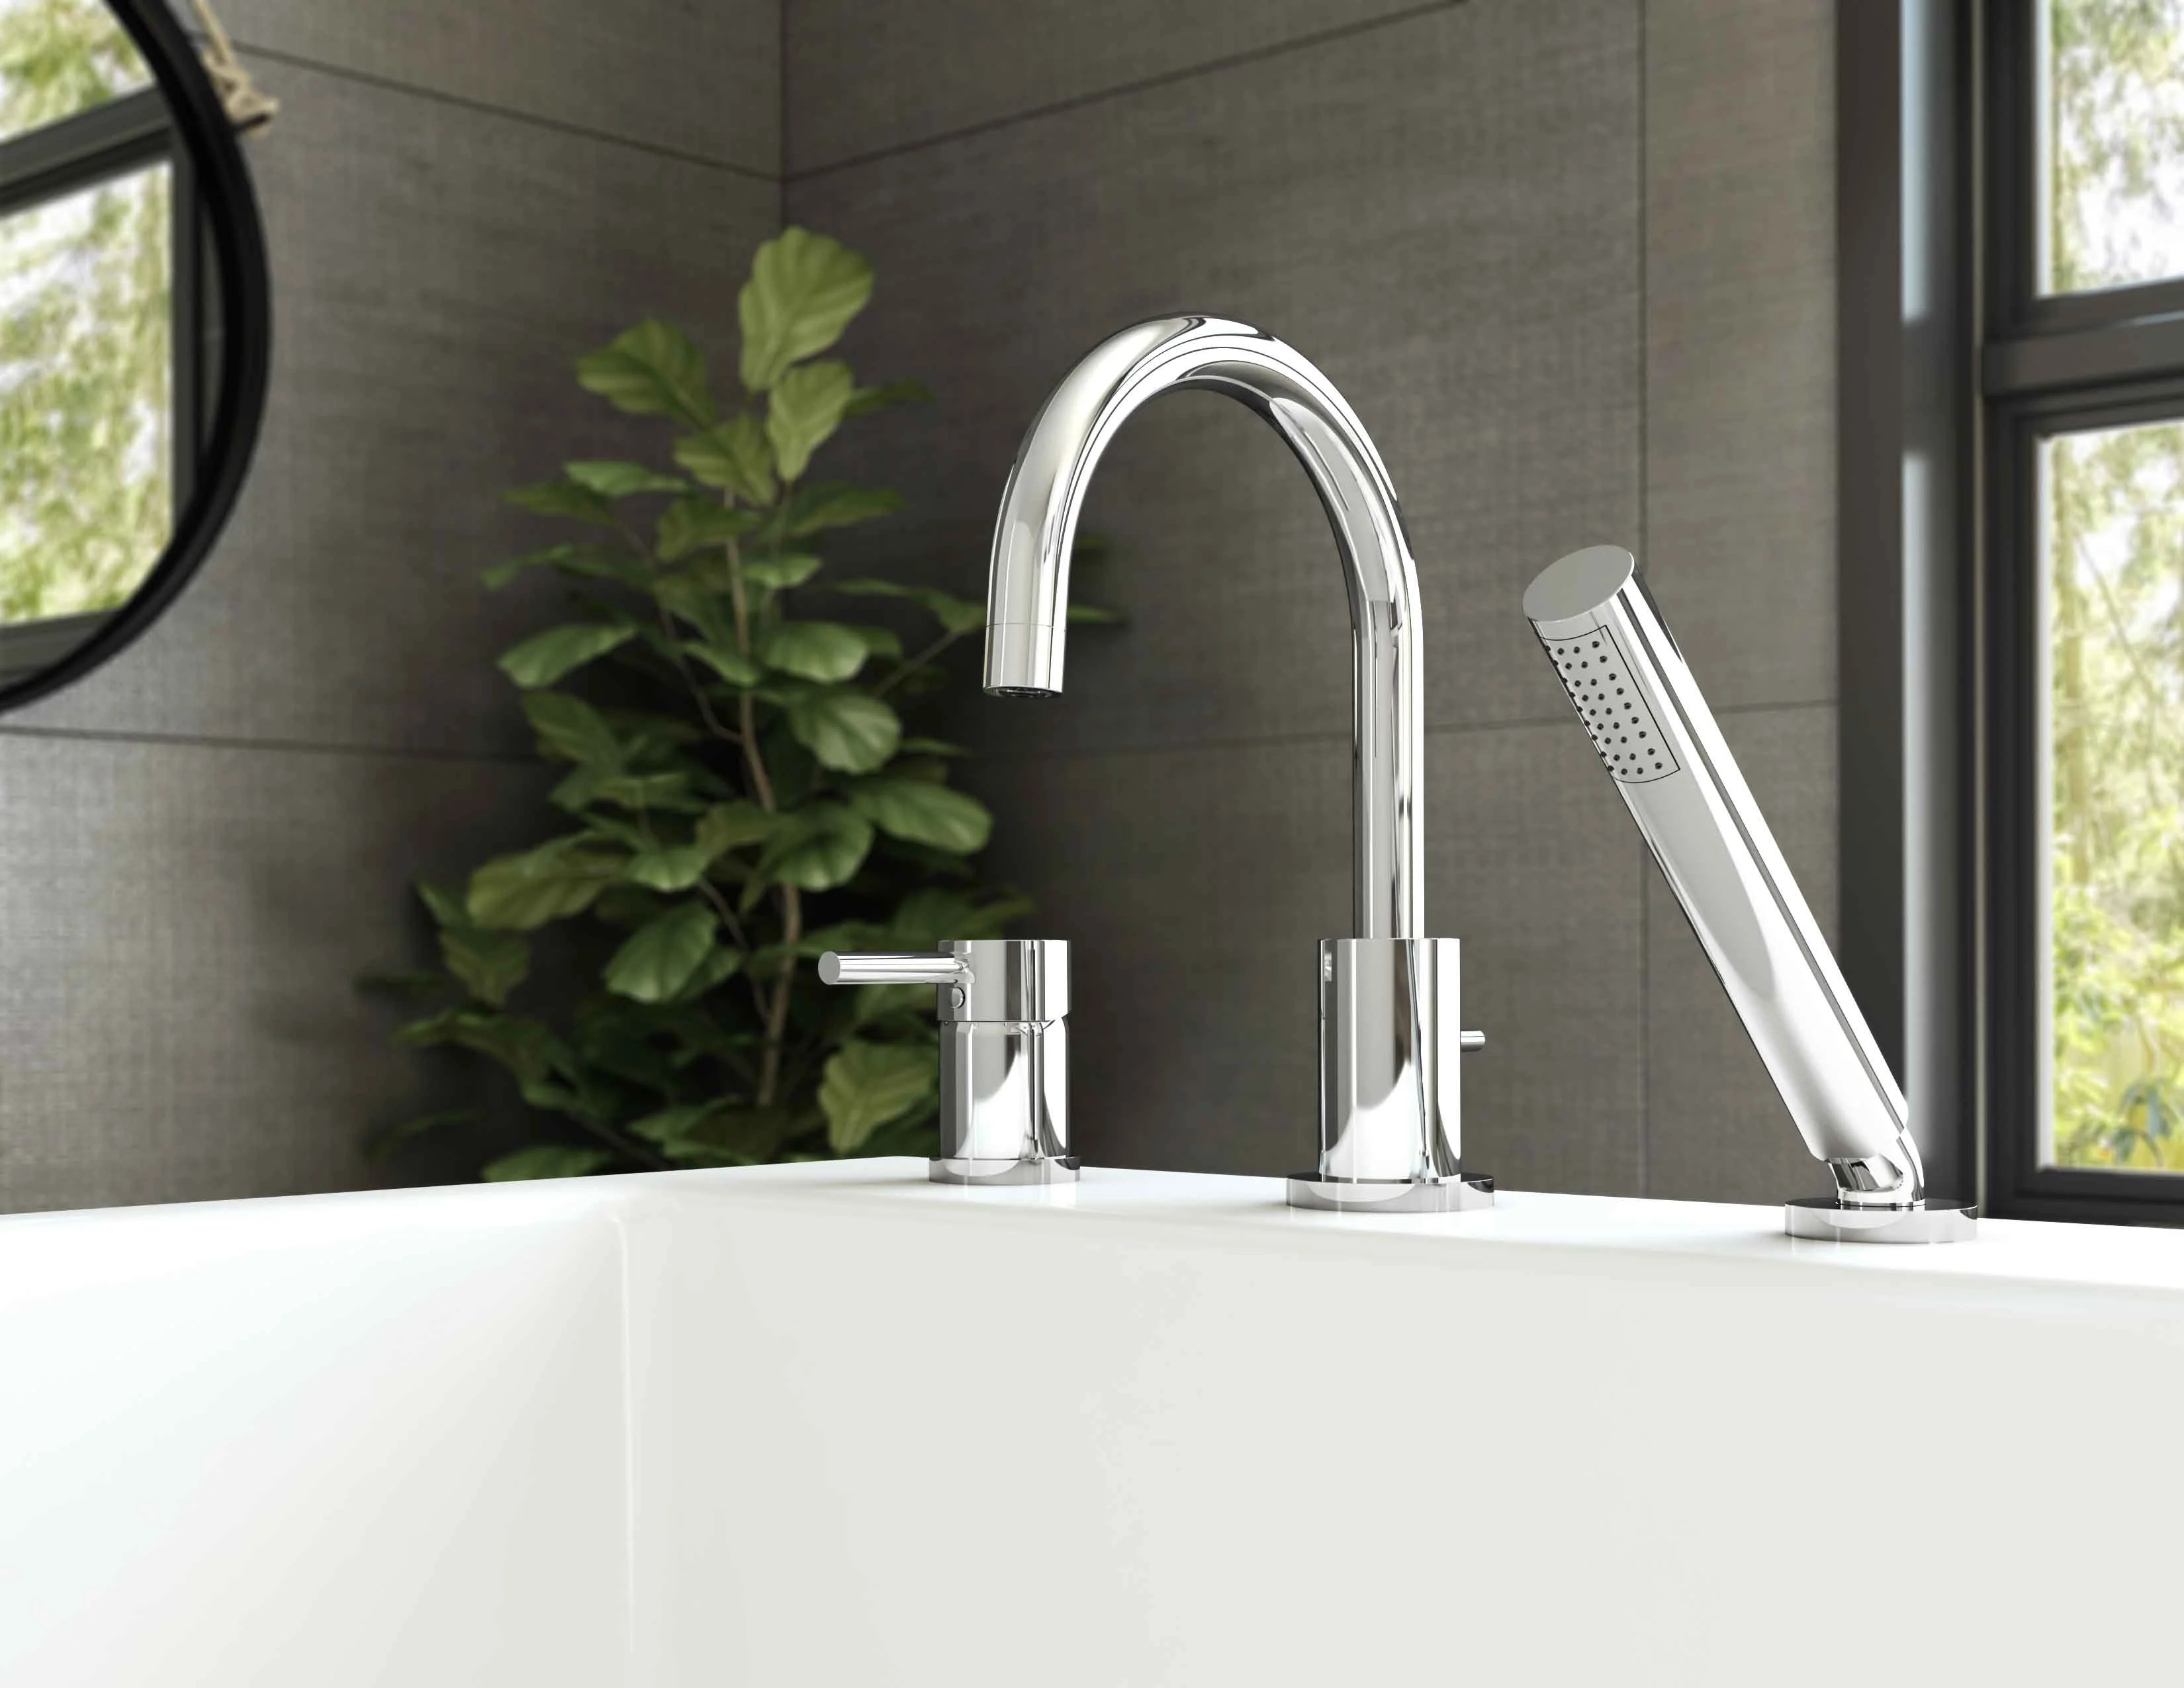 essential style single handle deck mounted roman tub faucet with diverter and handshower